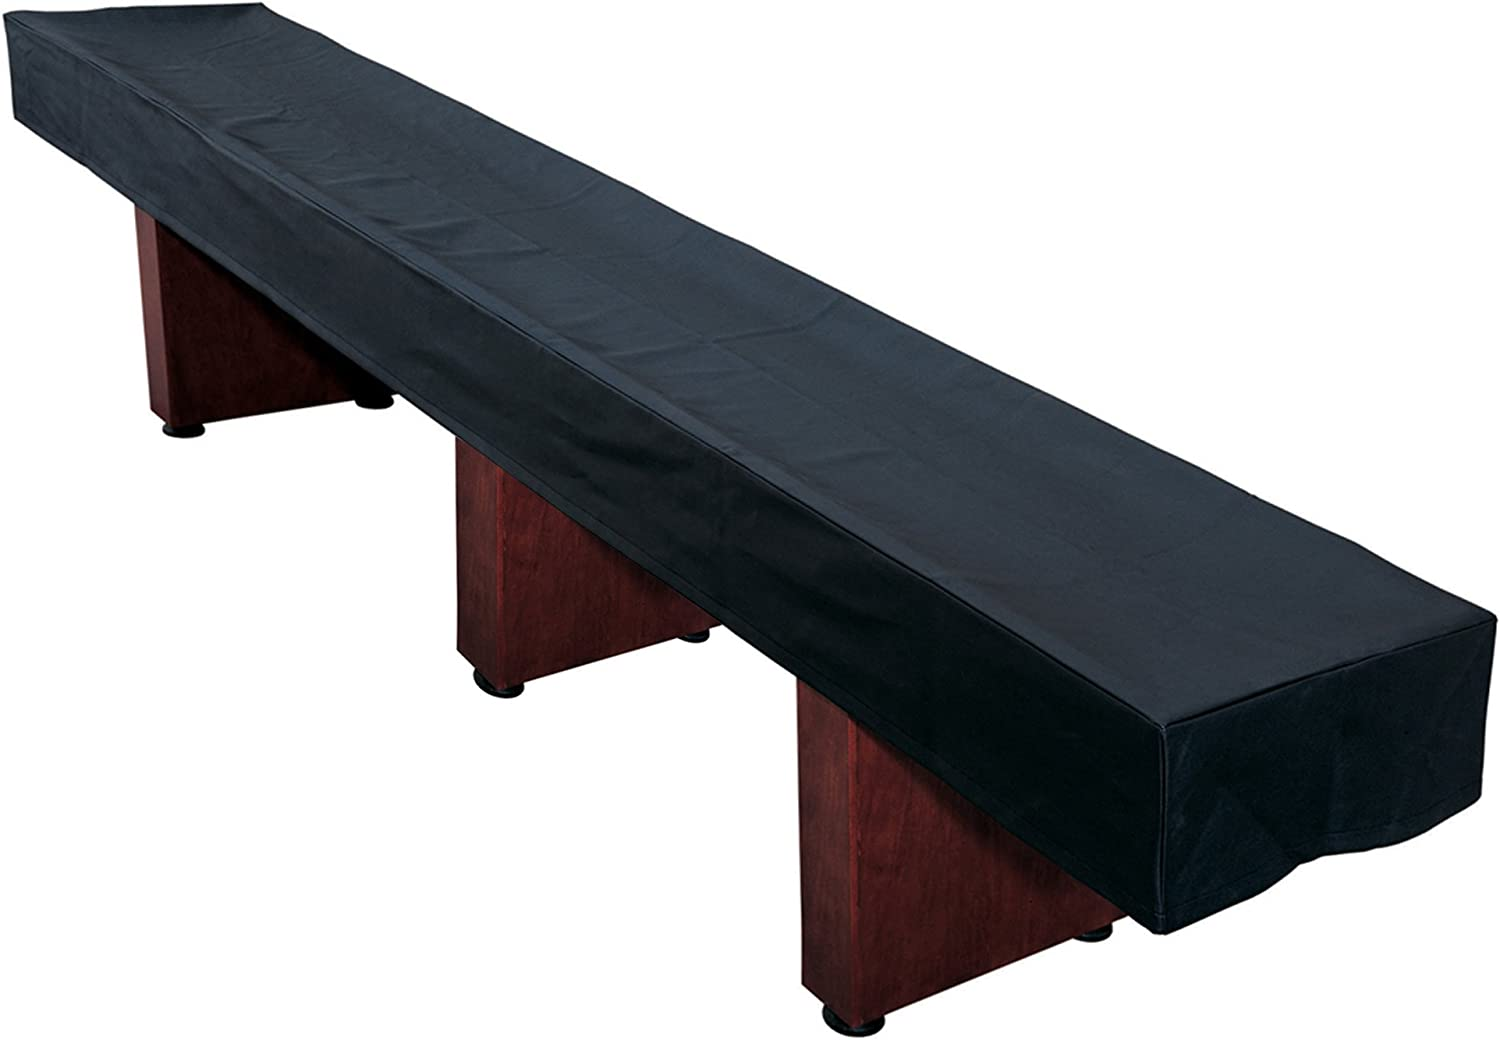 TORPSPORTS 9FT//12FT Black Shuffleboard Table Cover